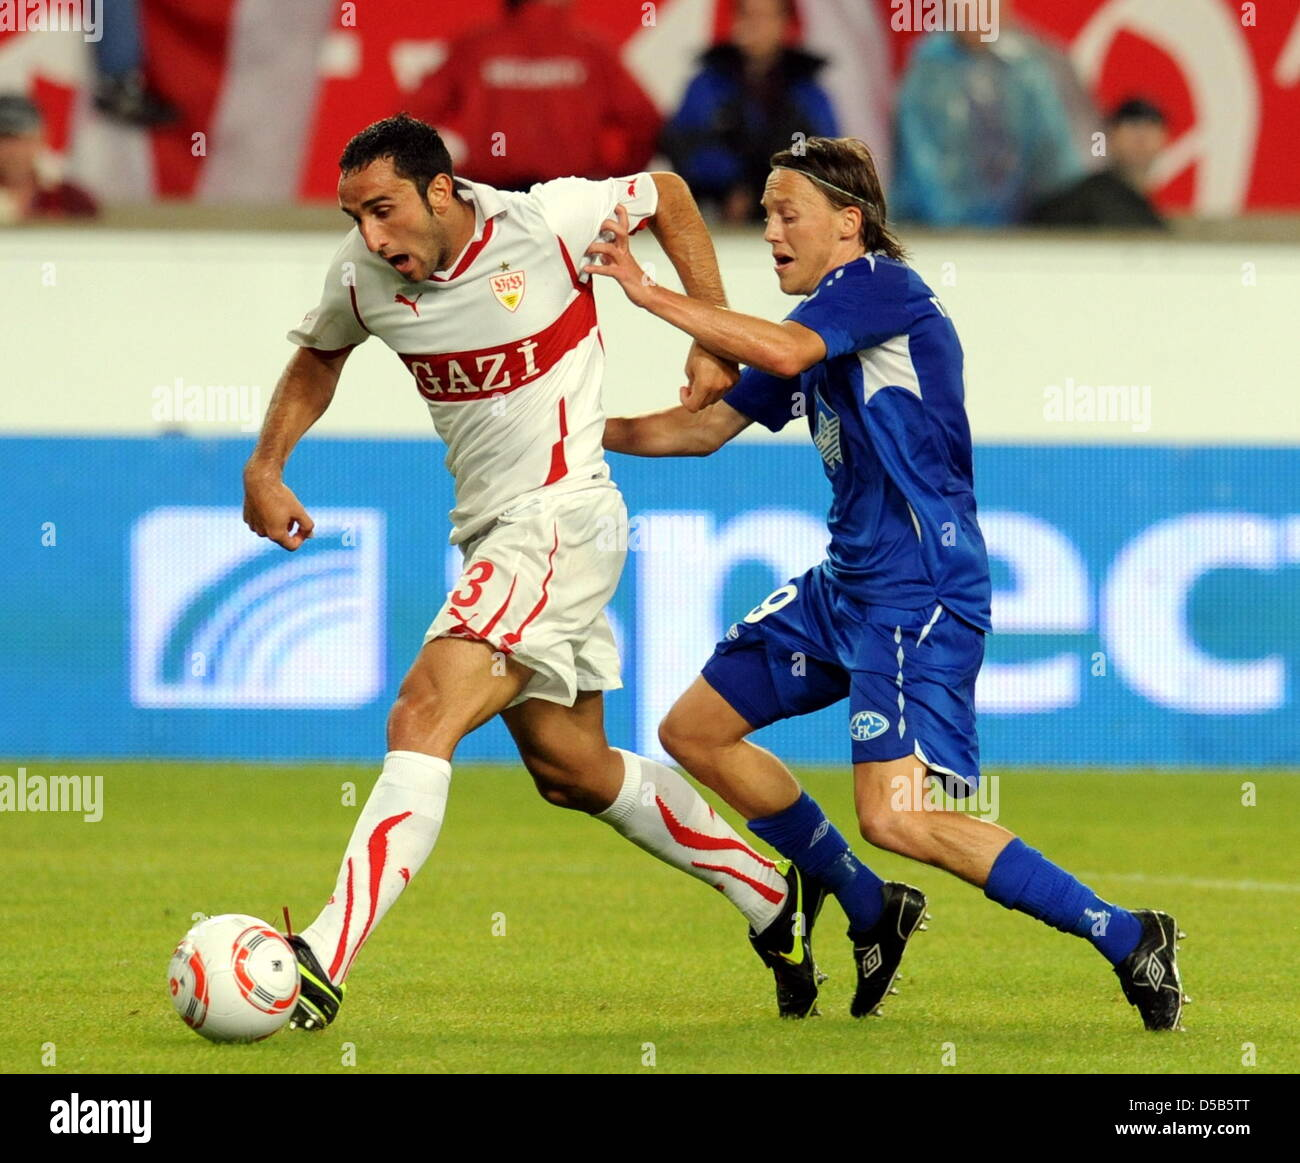 Stuttgart's player Cristian Molinaro (L) is locked in a fight for the ball with Mold FK's player Mattias Mostrom Stock Photo